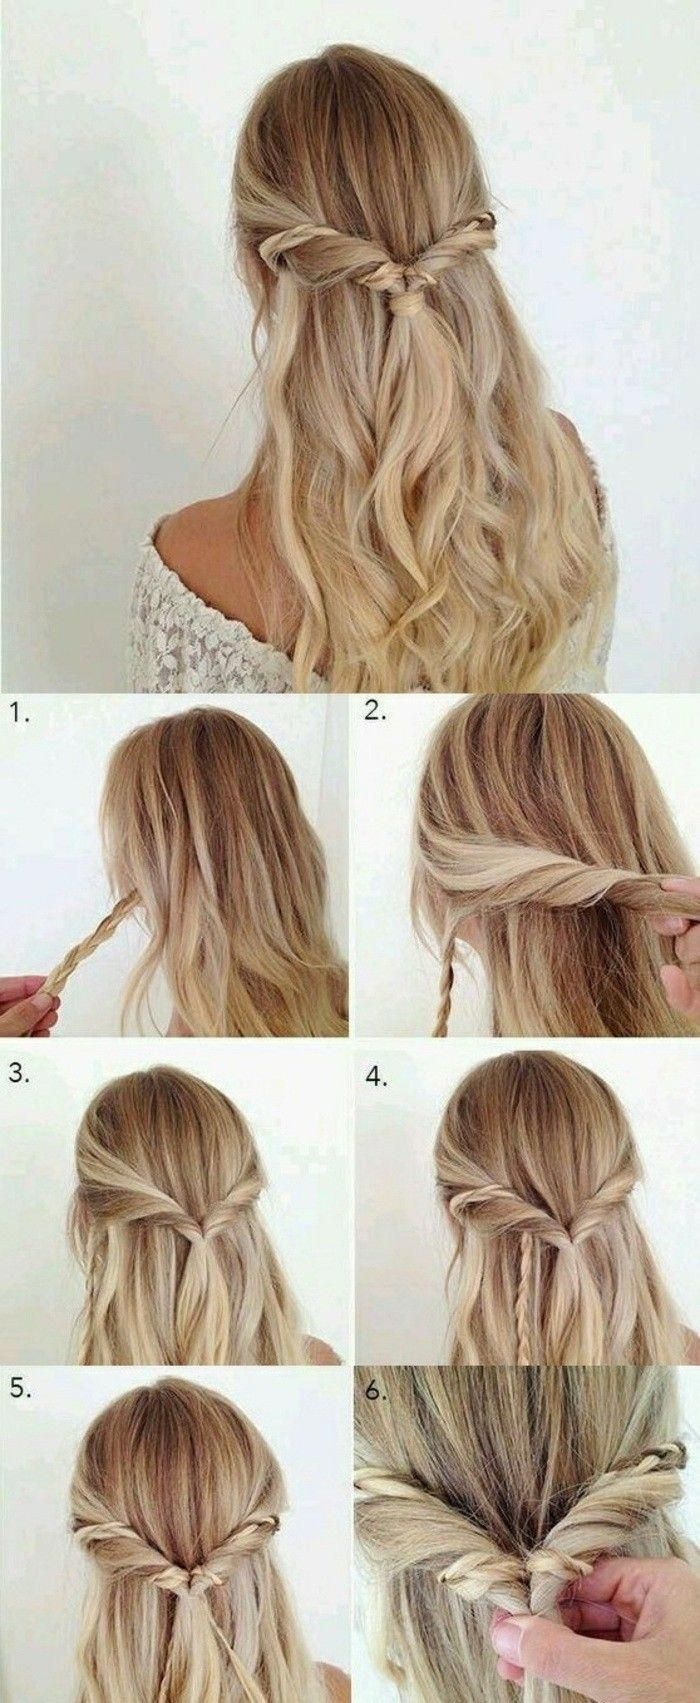 step by step diy tutorial, twisted hair, long blonde wavy hair, with braids, prom hairstyles for short hair #Shorthairbraids